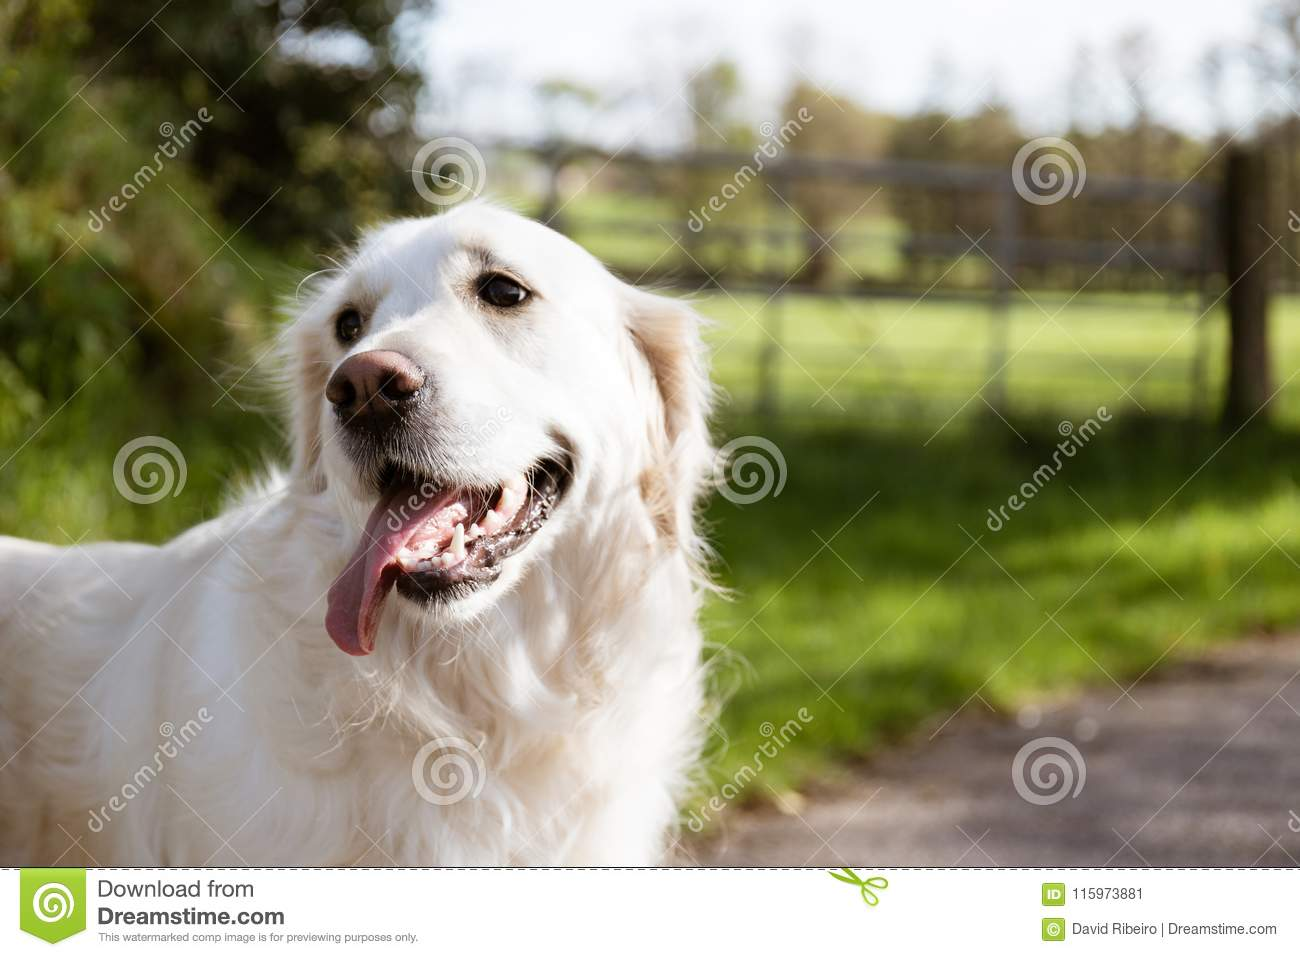 Purebred White Golden Retriever In The Middle Of A Road Stock Image